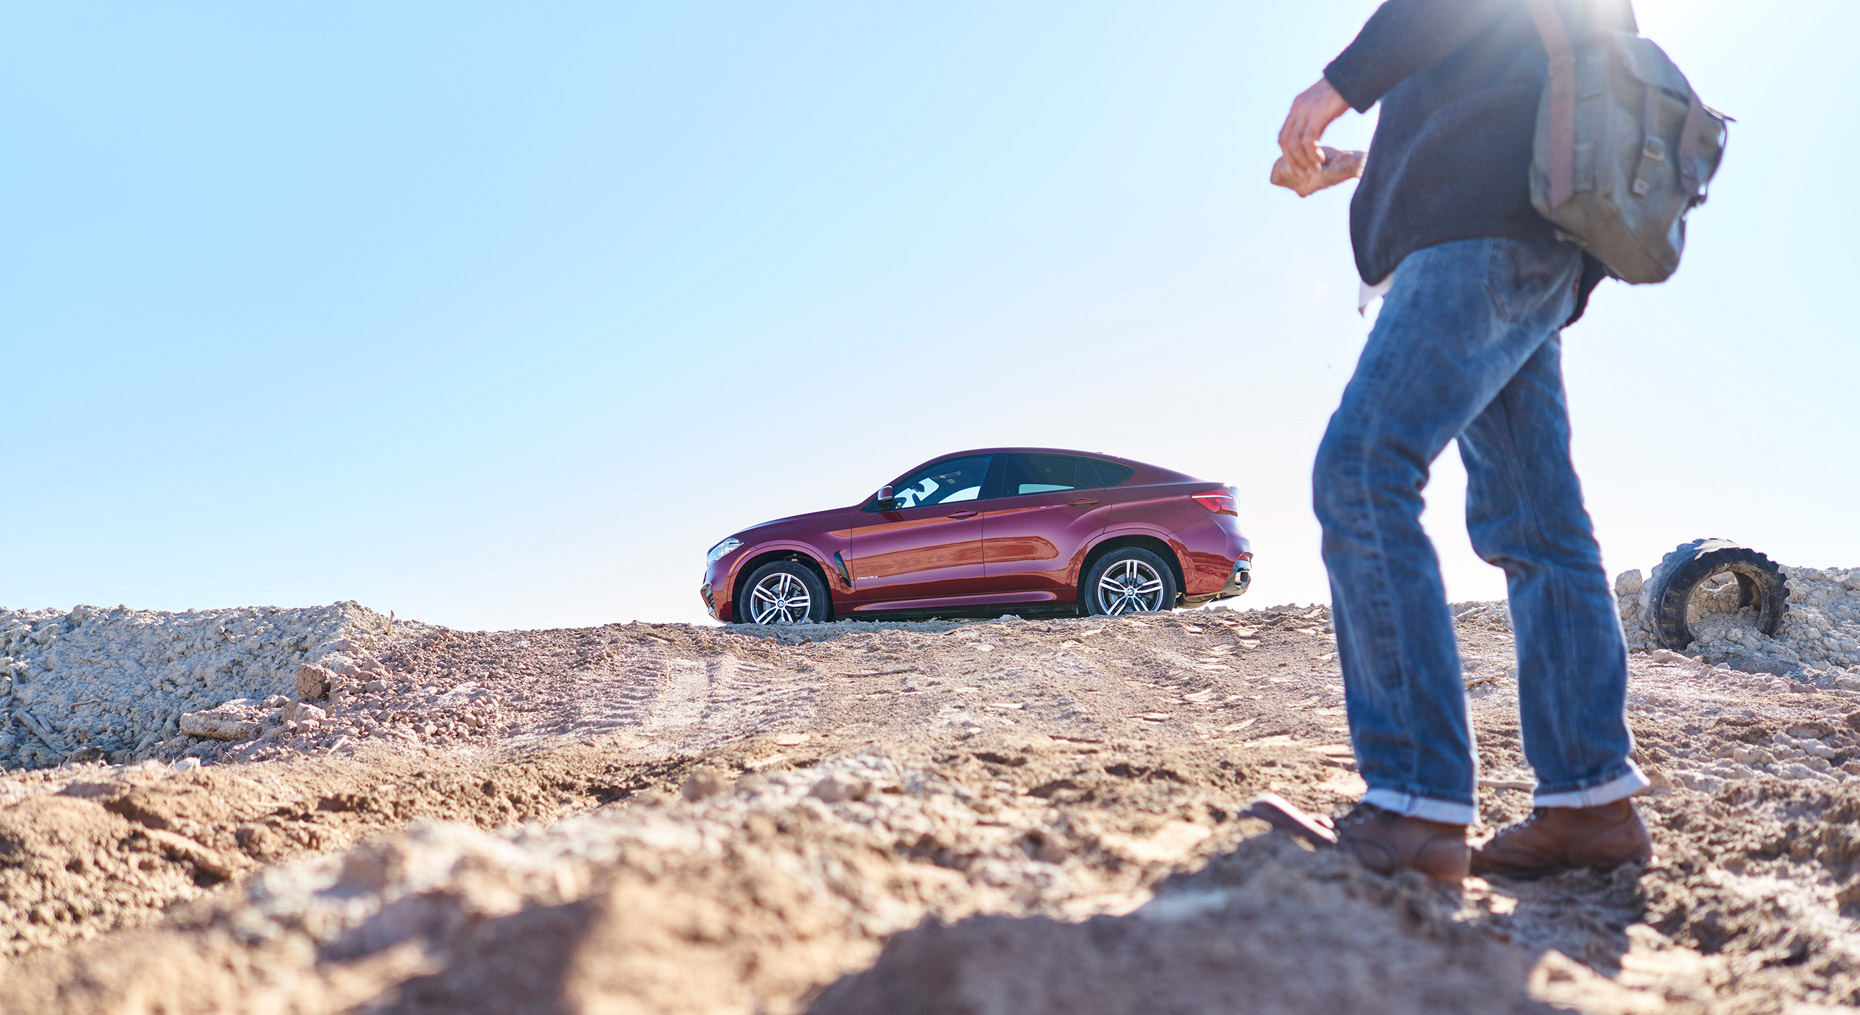 DSC00307_IG_BMW-X6_Salton-Sea_1_website